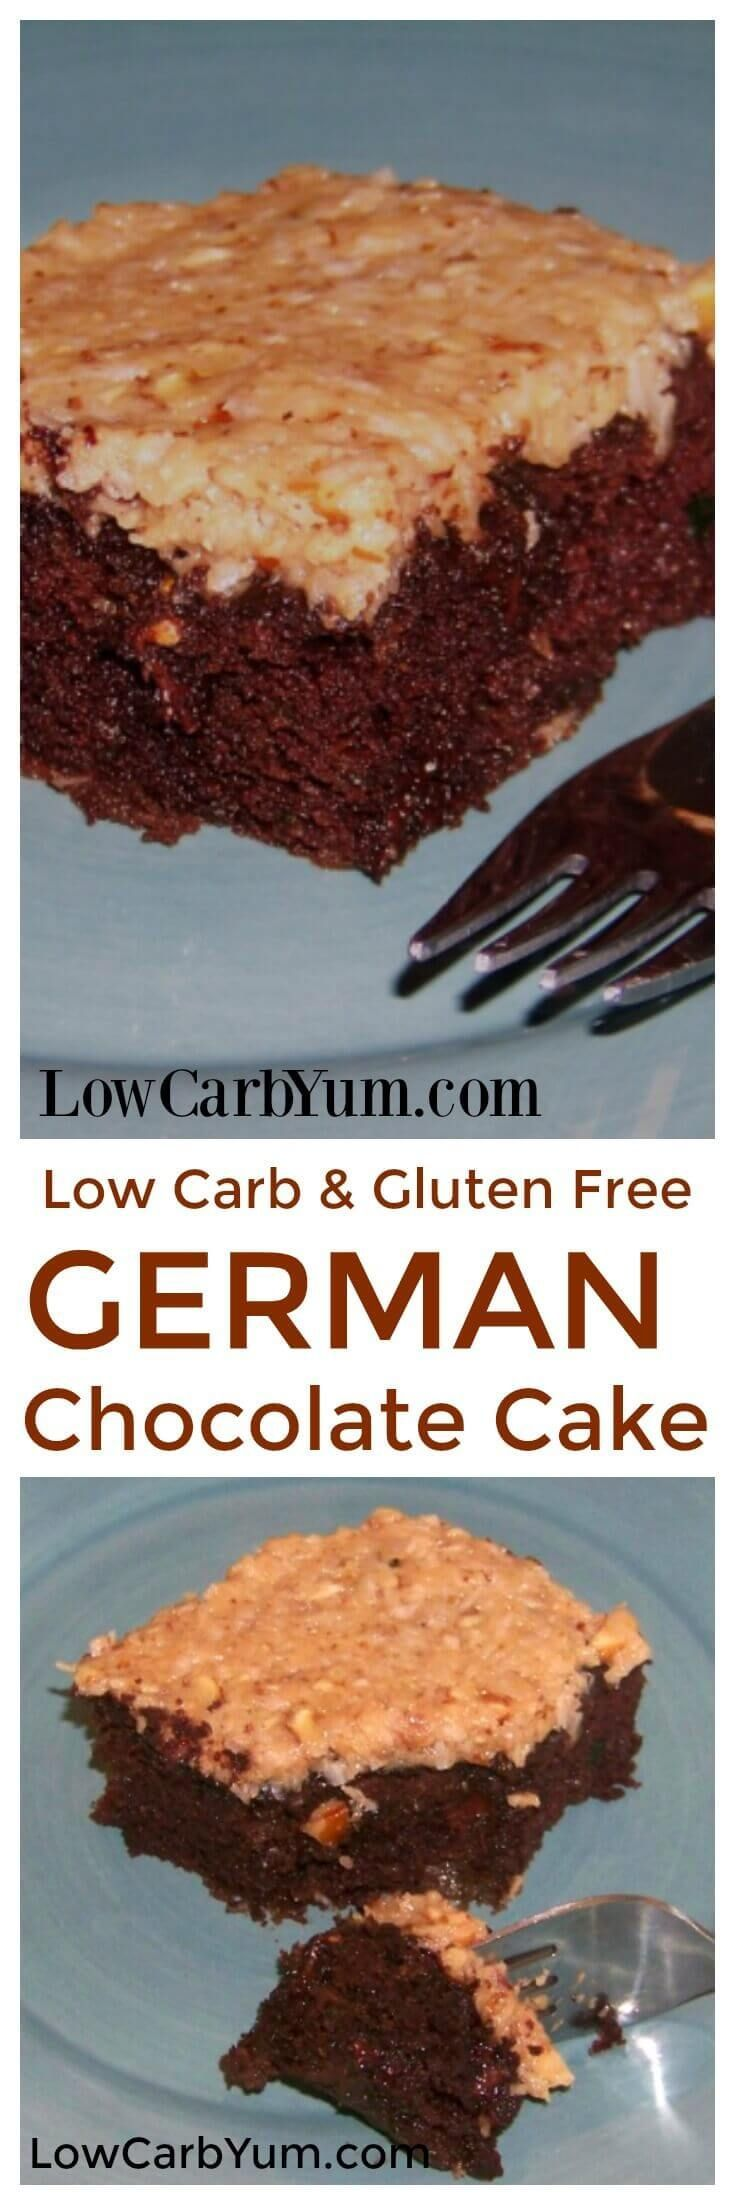 383 best CHOCOLATE / Sugar-Free Mom images on Pinterest | Postres, Chocolates and Low carb desserts